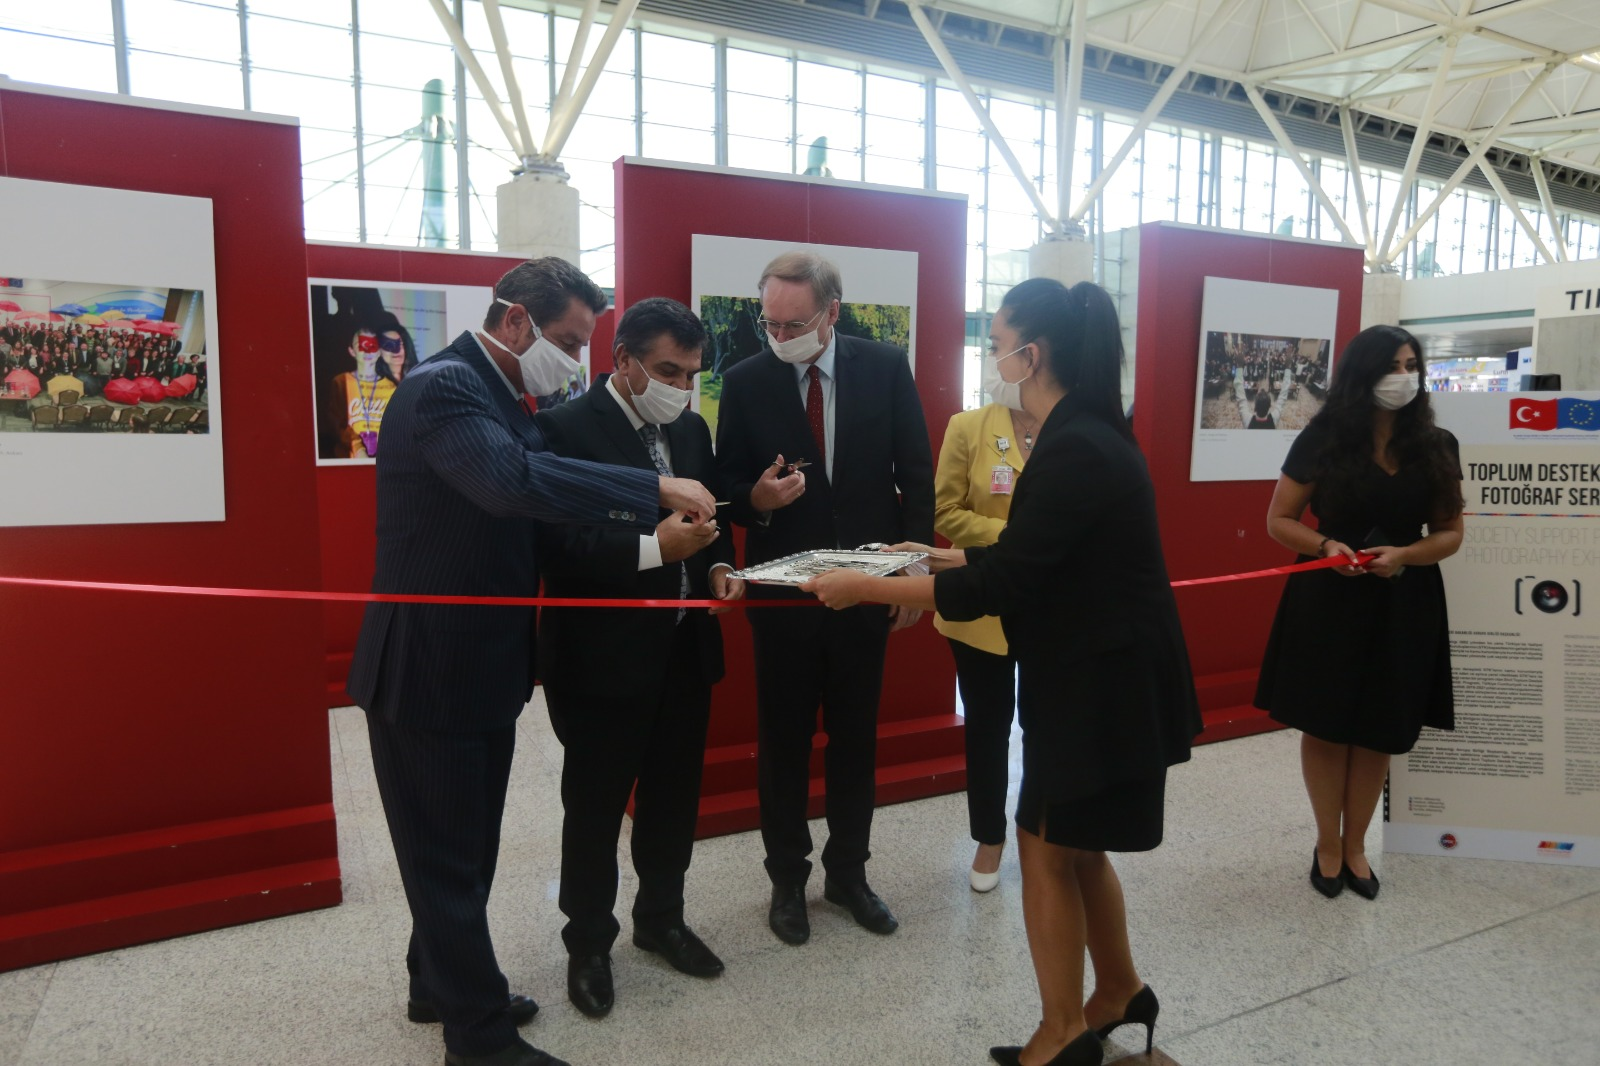 Civil Society Support Programme Photography Exhibition Launched in Ankara